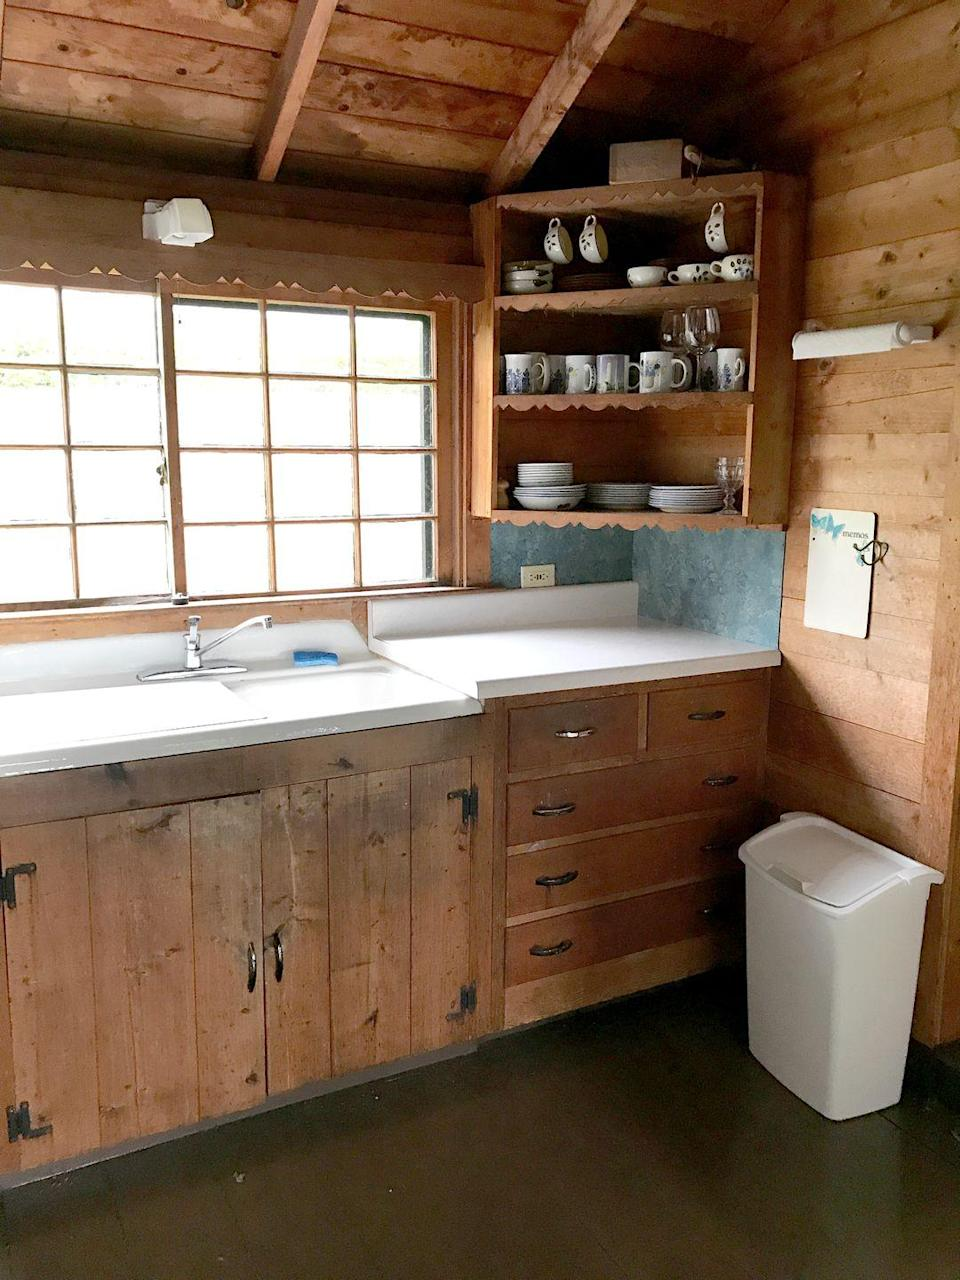 <p>While this kitchen is already pretty clean and tidy, there are a few ways it can improve to look more up to date and elevated. The best news is that it only takes a few small updates to make a big difference. </p>